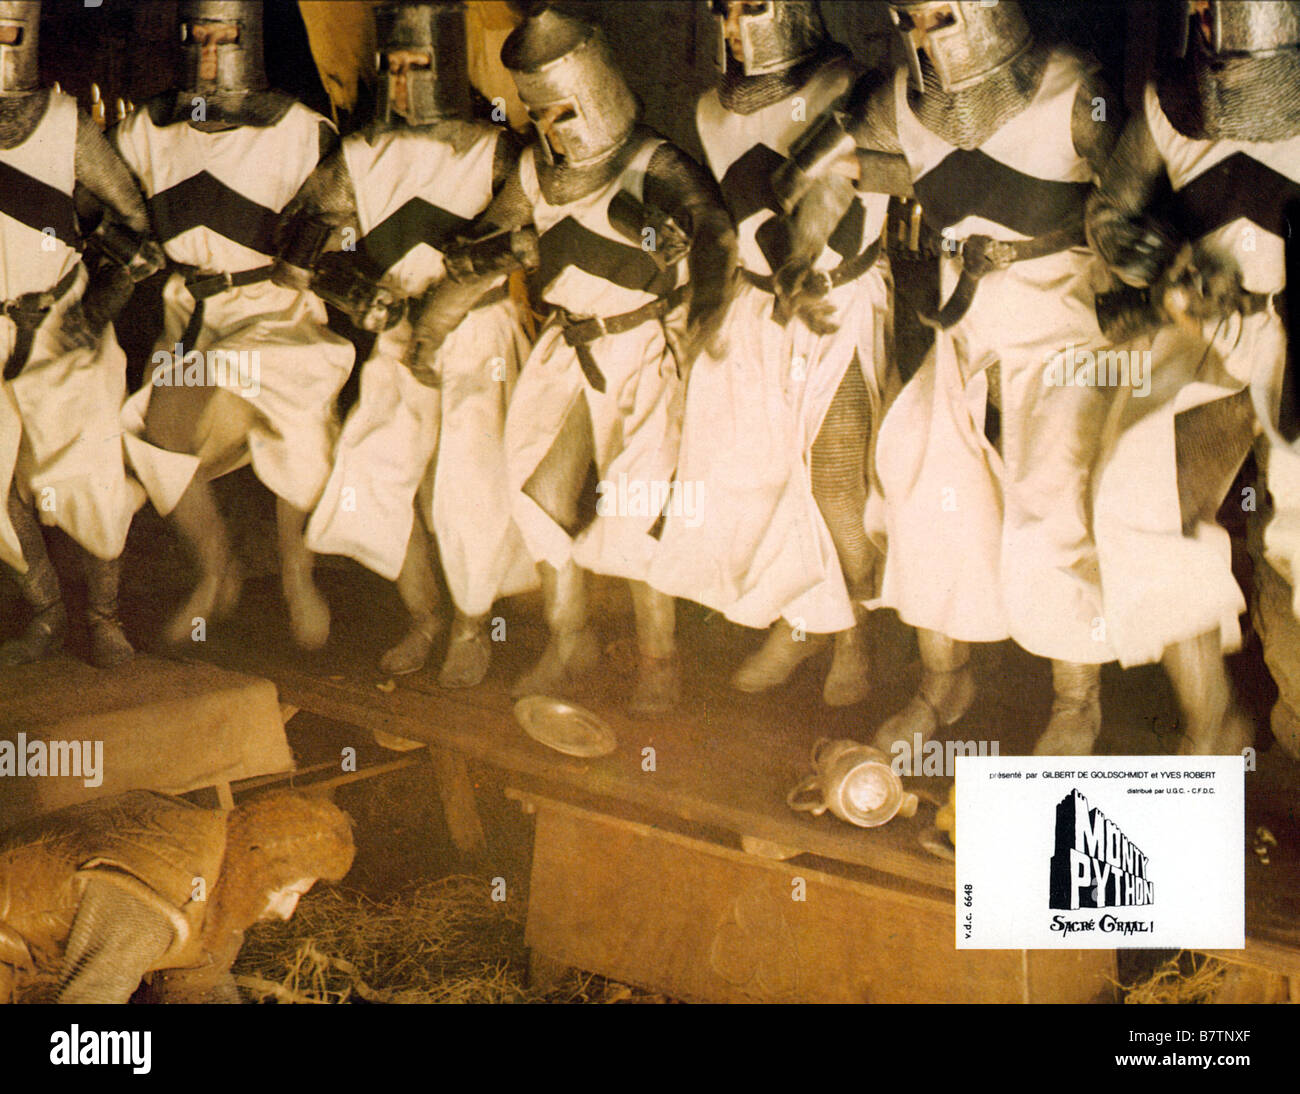 Monty Python The Royal Philharmonic Orchestra Goes To The Bathroom: Monty Python And The Holy Grail (1975) Stock Photos